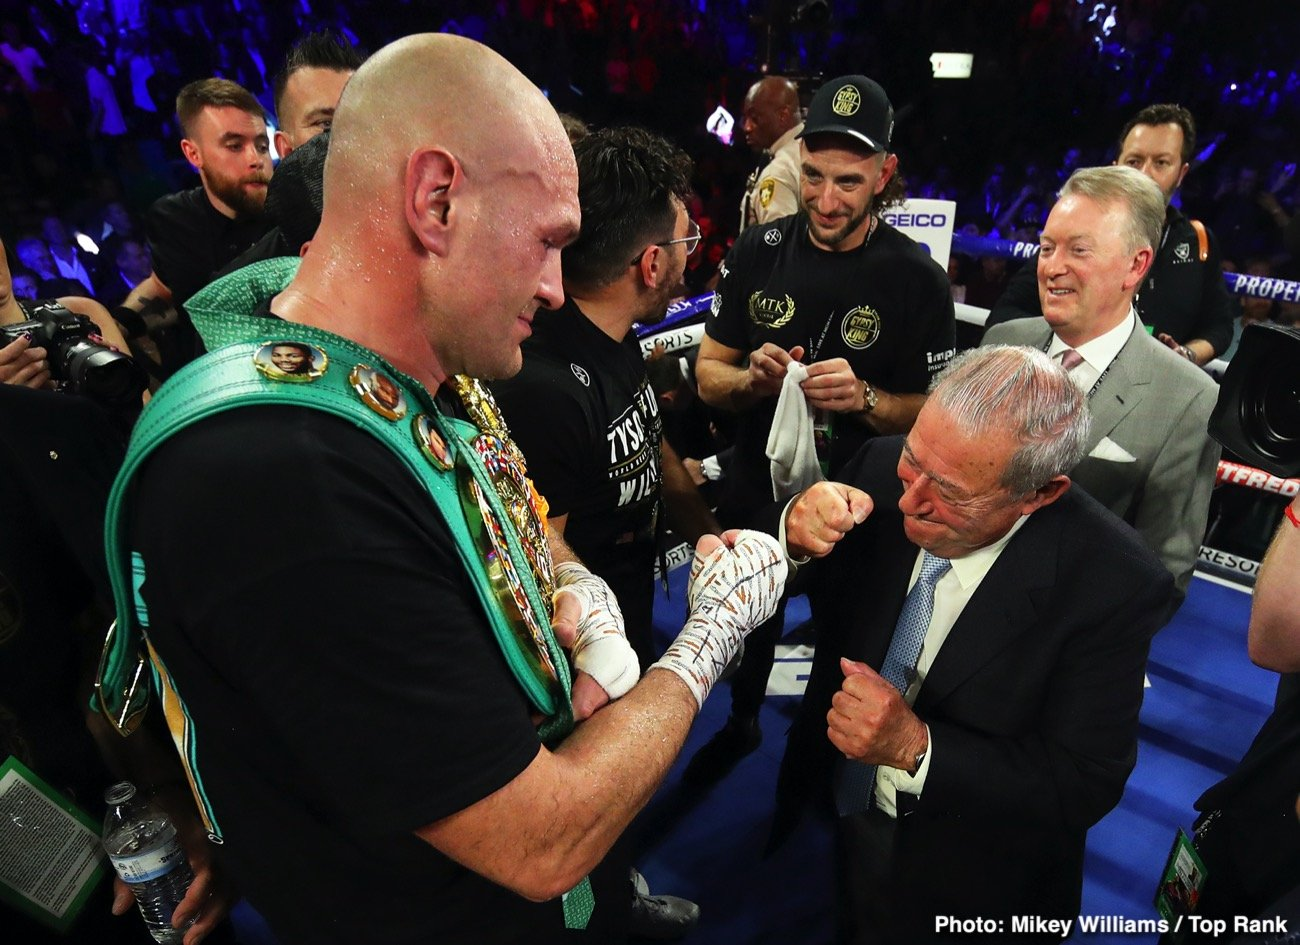 Anthony Joshua, Deontay Wilder, Dillian Whyte, Tyson Fury - Speaking about Dillian Whyte, WBC heavyweight champion Tyson Fury says he's not going to be dictated to by any of the sanctioning bodies by being pushed into fighting any of their mandatory challengers.